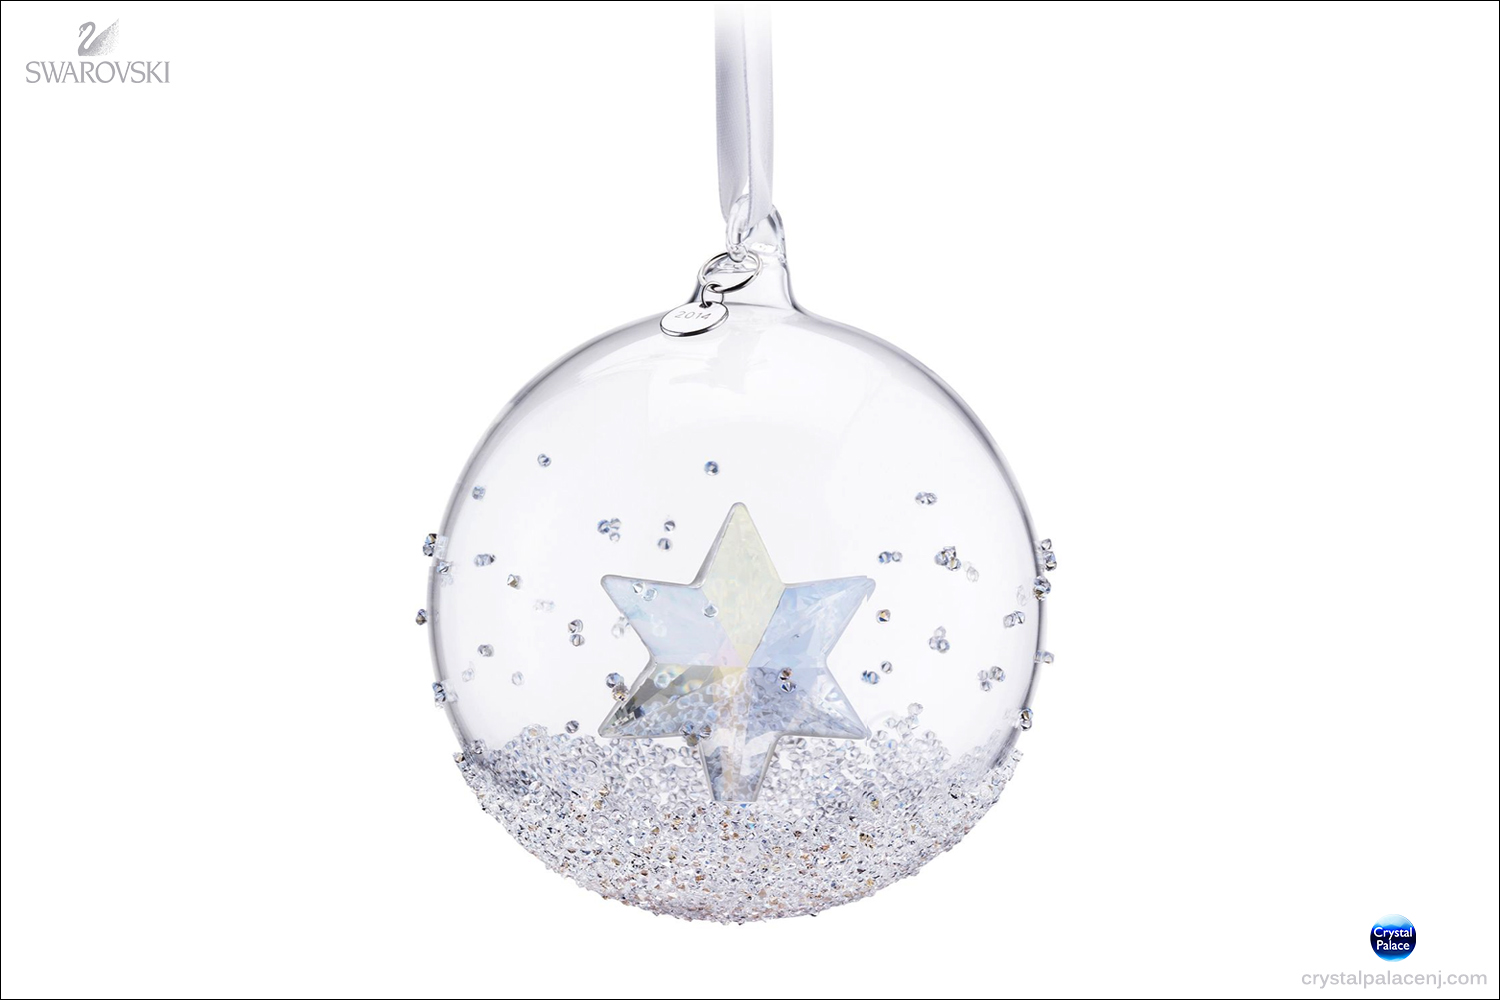 Swarovski crystal christmas ball ornament annual edition